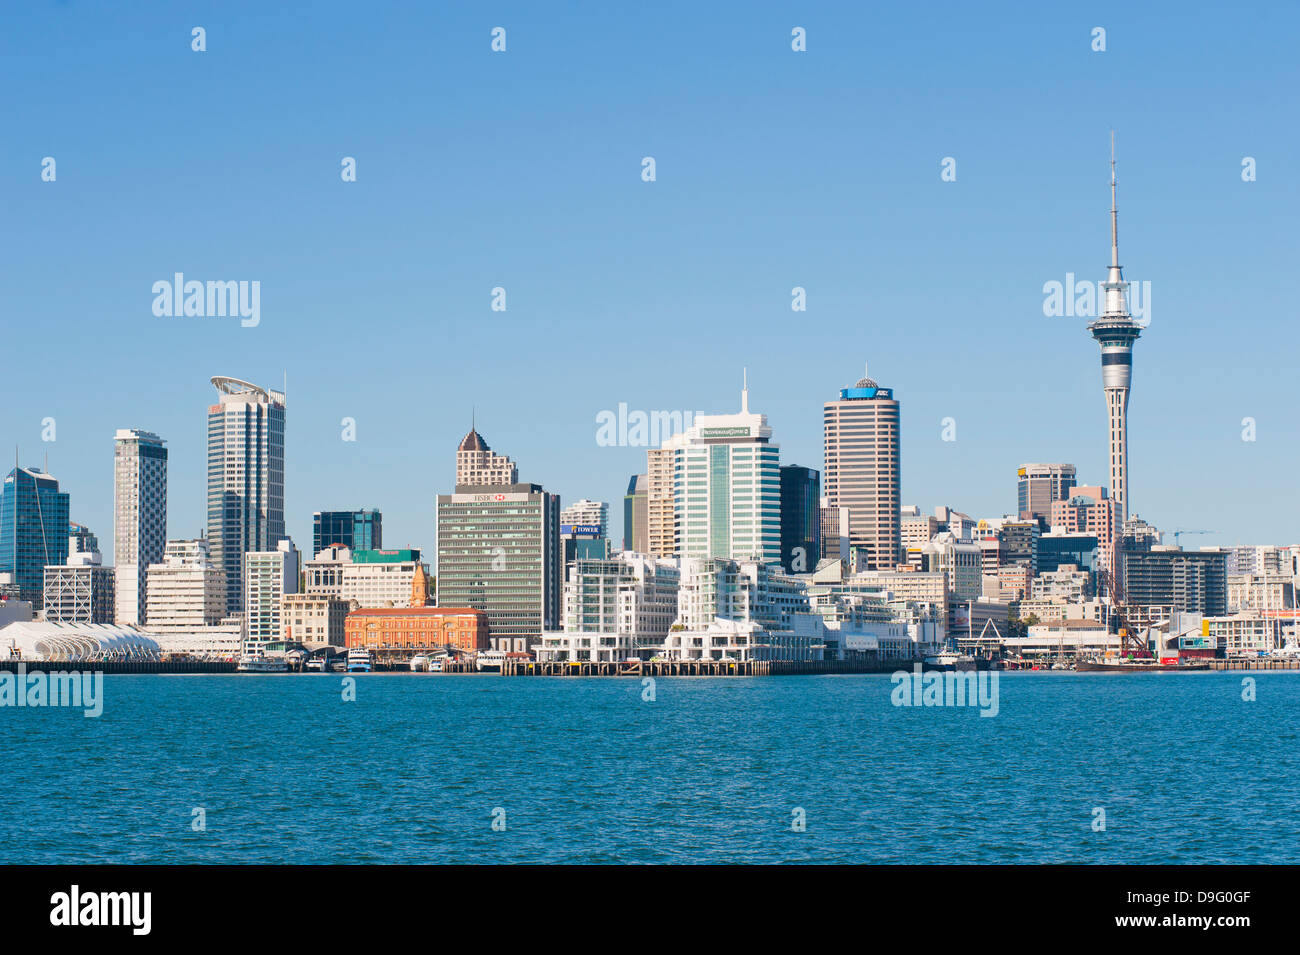 Auckland city skyline, North Island, New Zealand Stock Photo